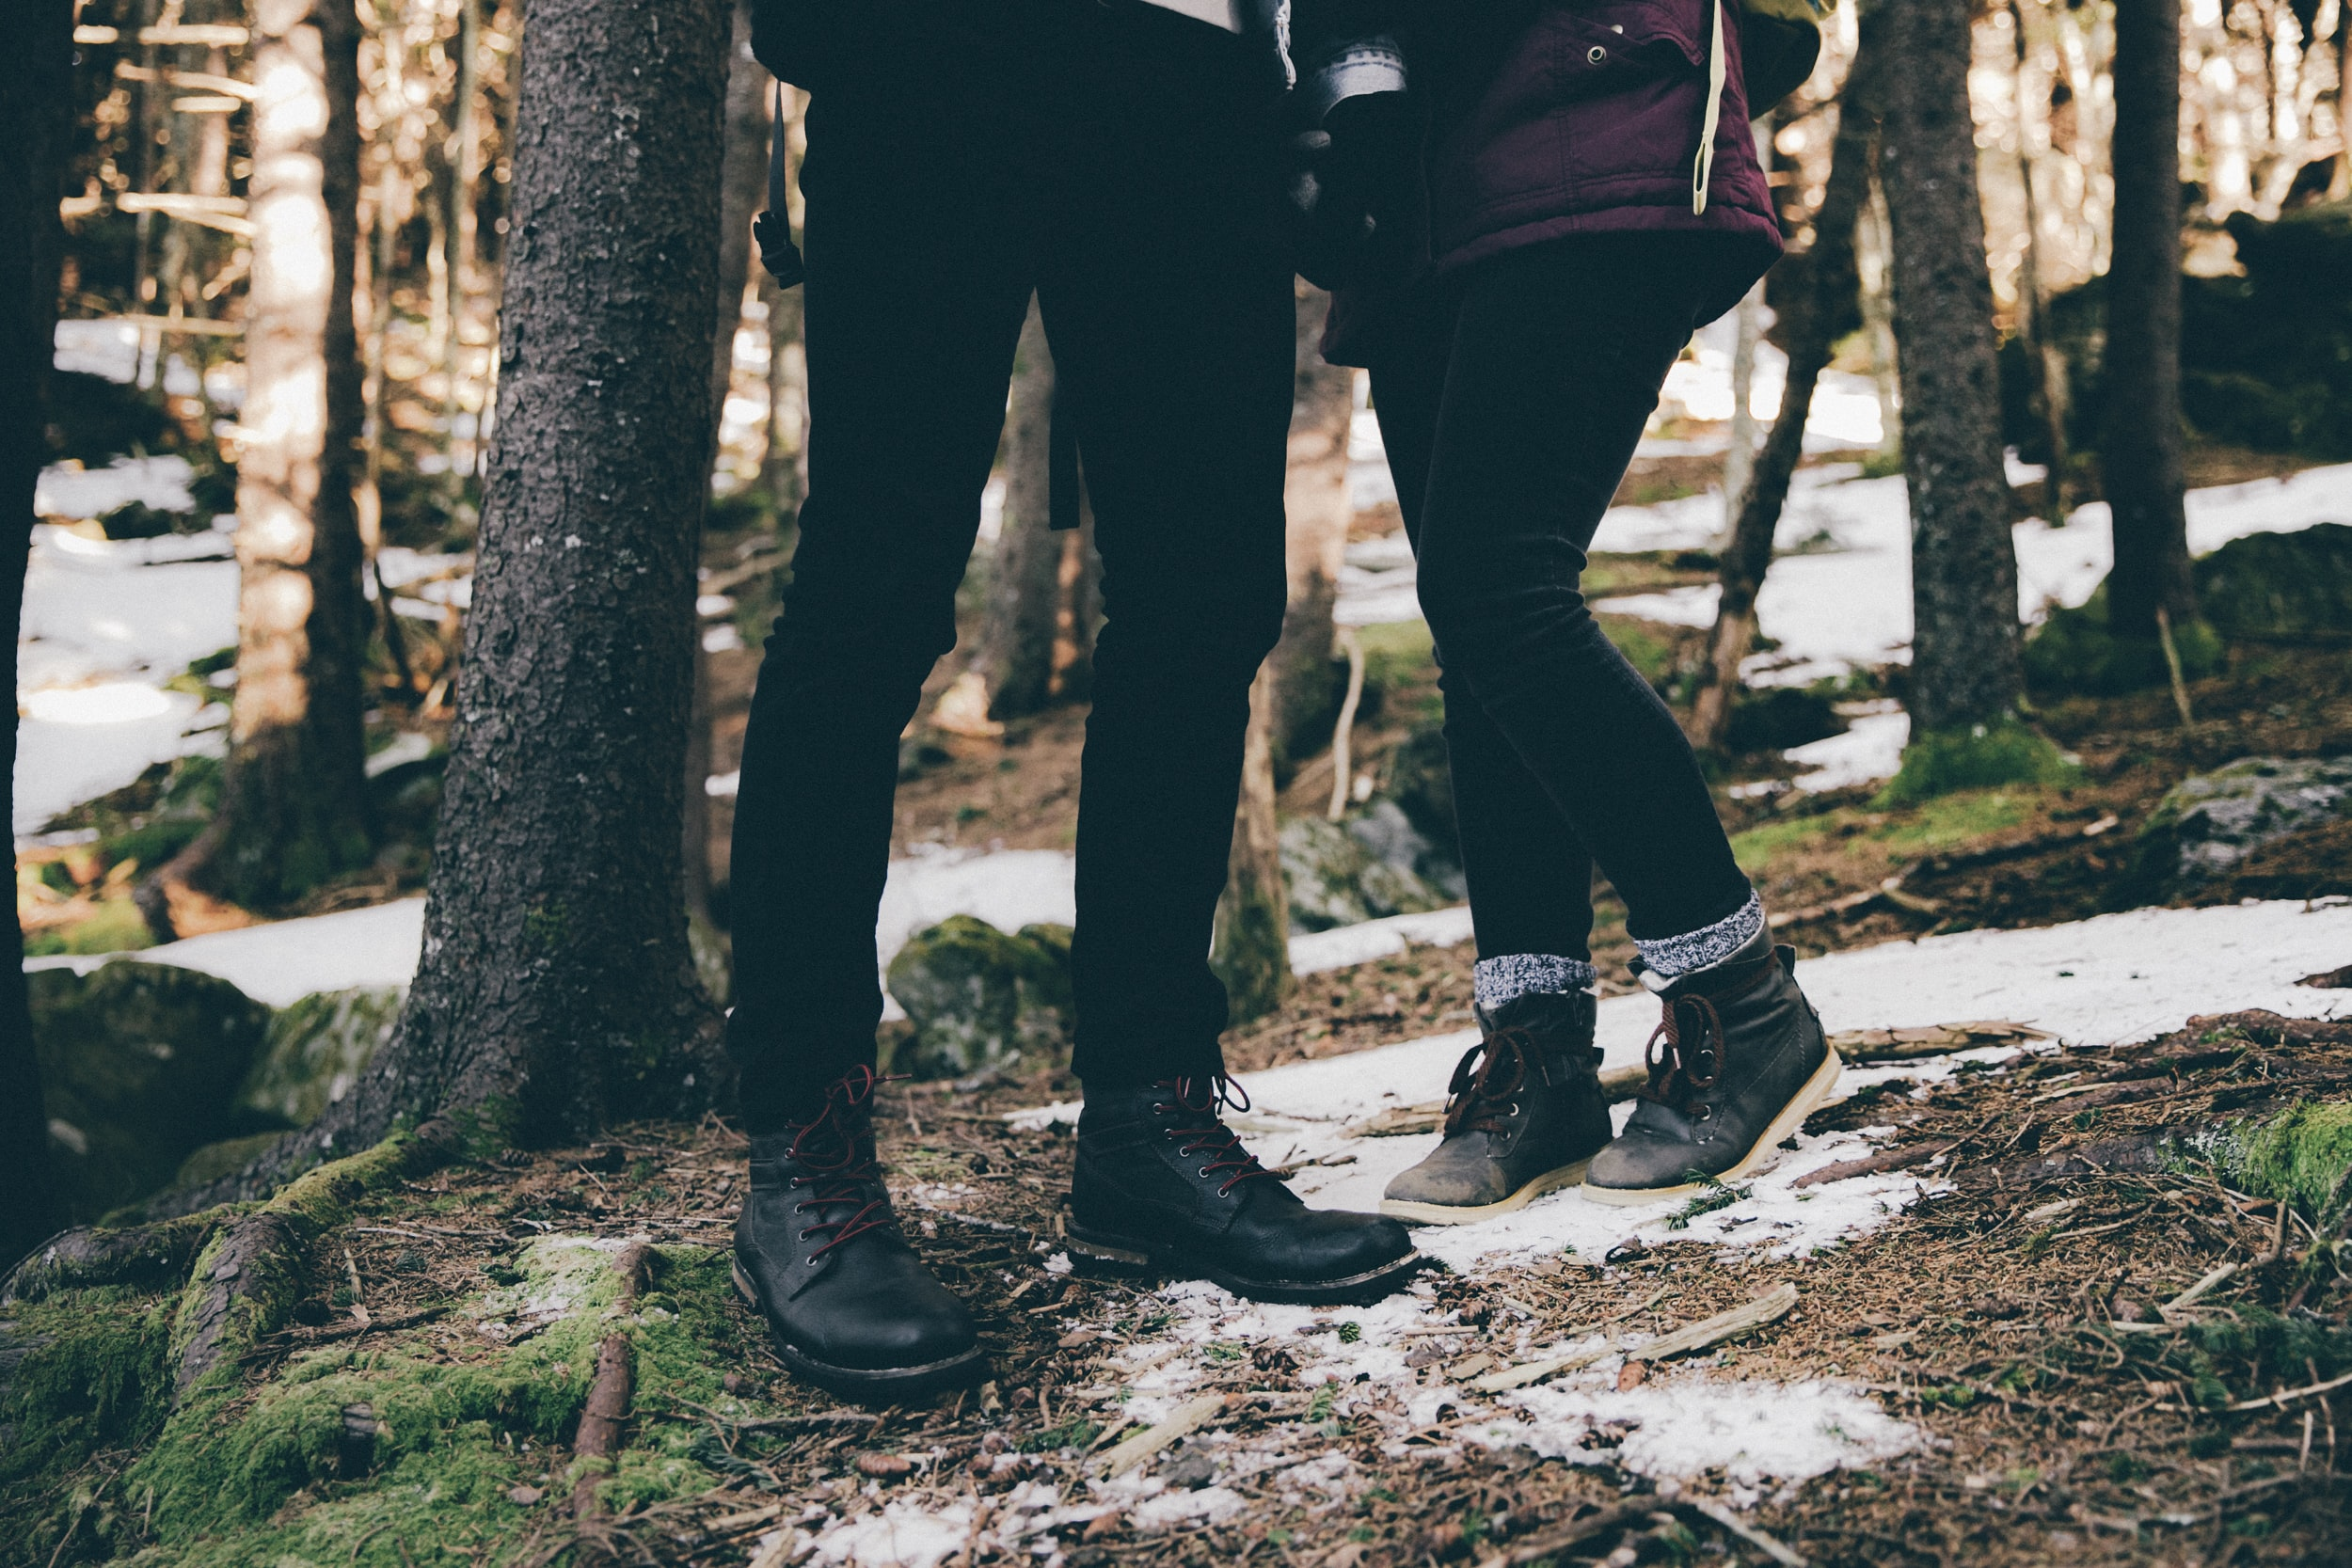 A low shot of a man and a woman standing close to each other in a forest on a winter's day